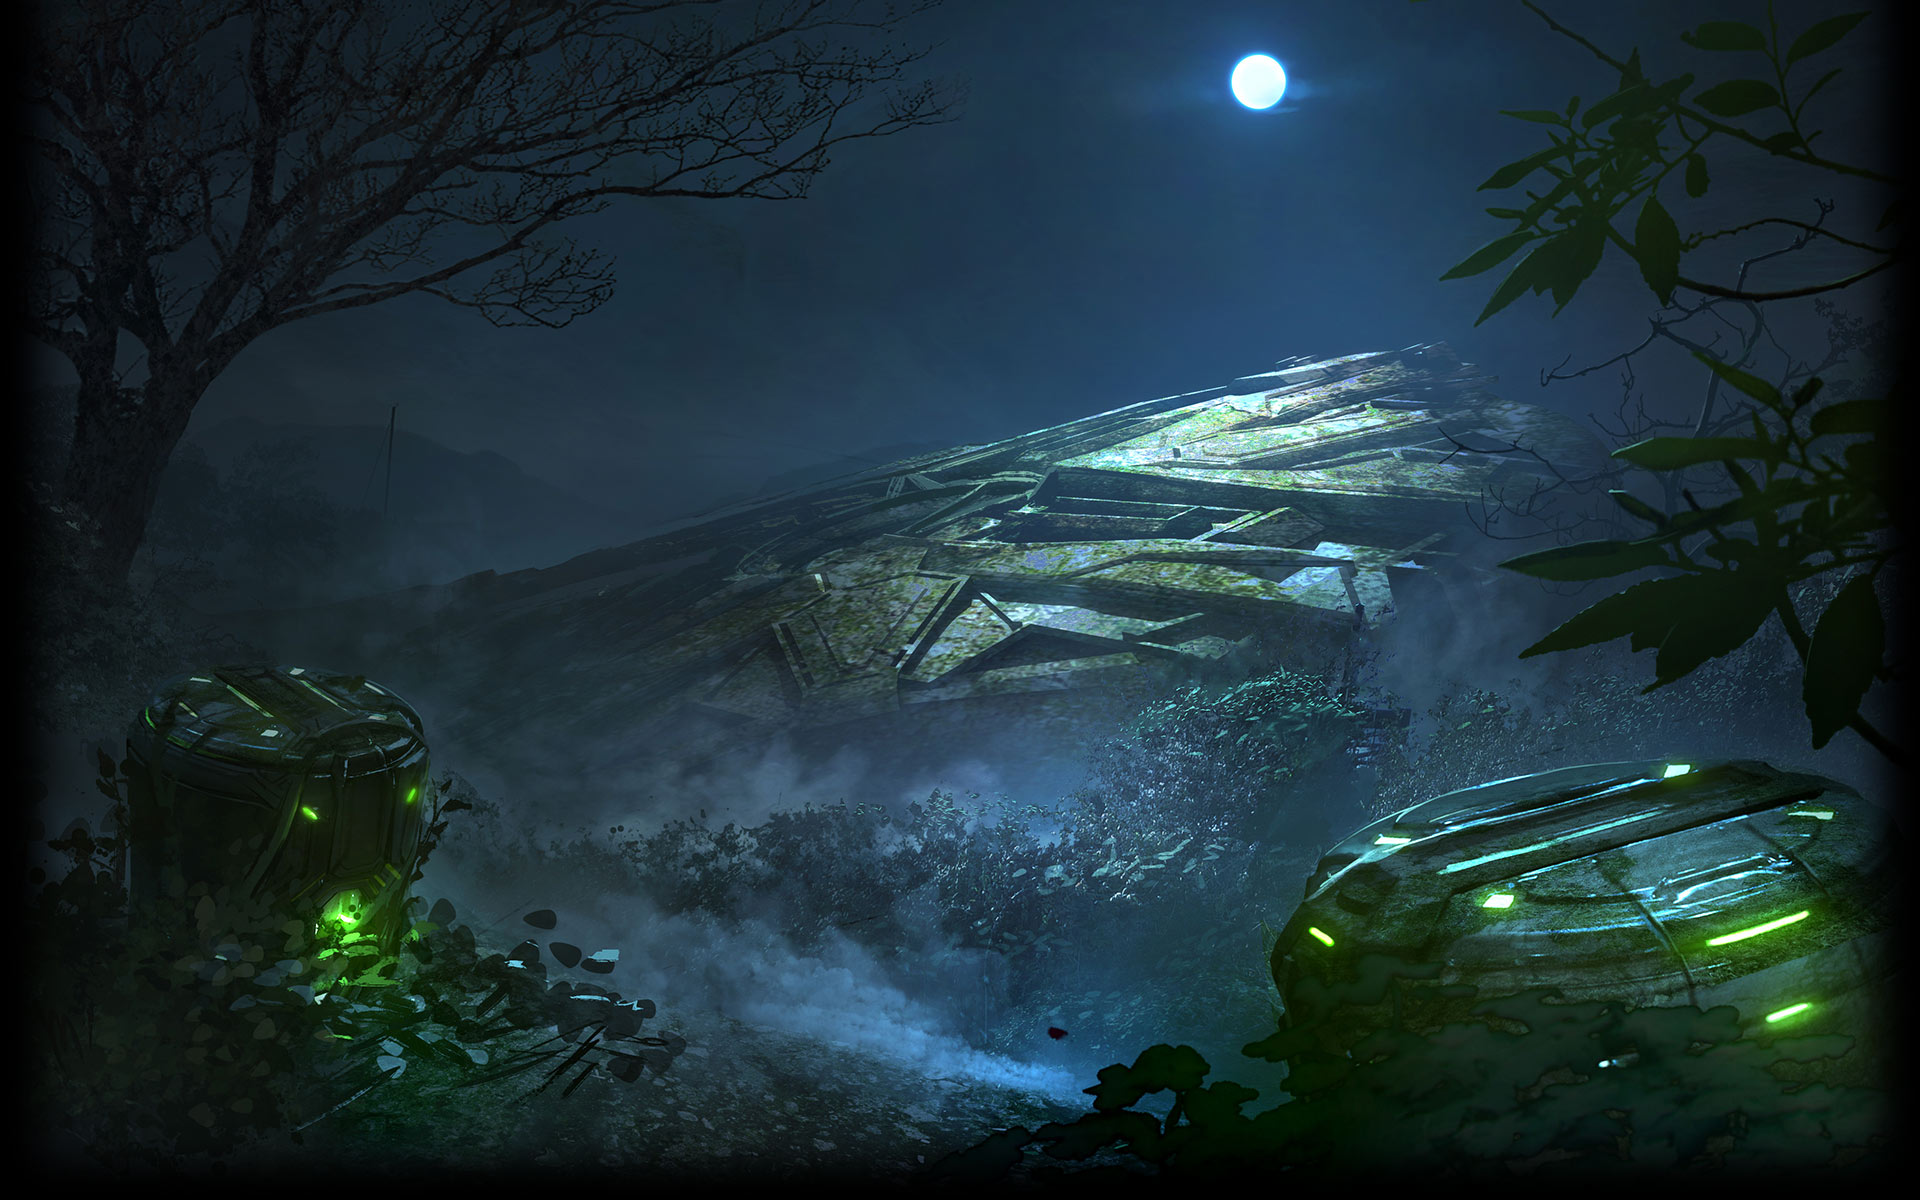 Crashed-Alien-Ship-At-Night-x-wallpaper-wp5205408